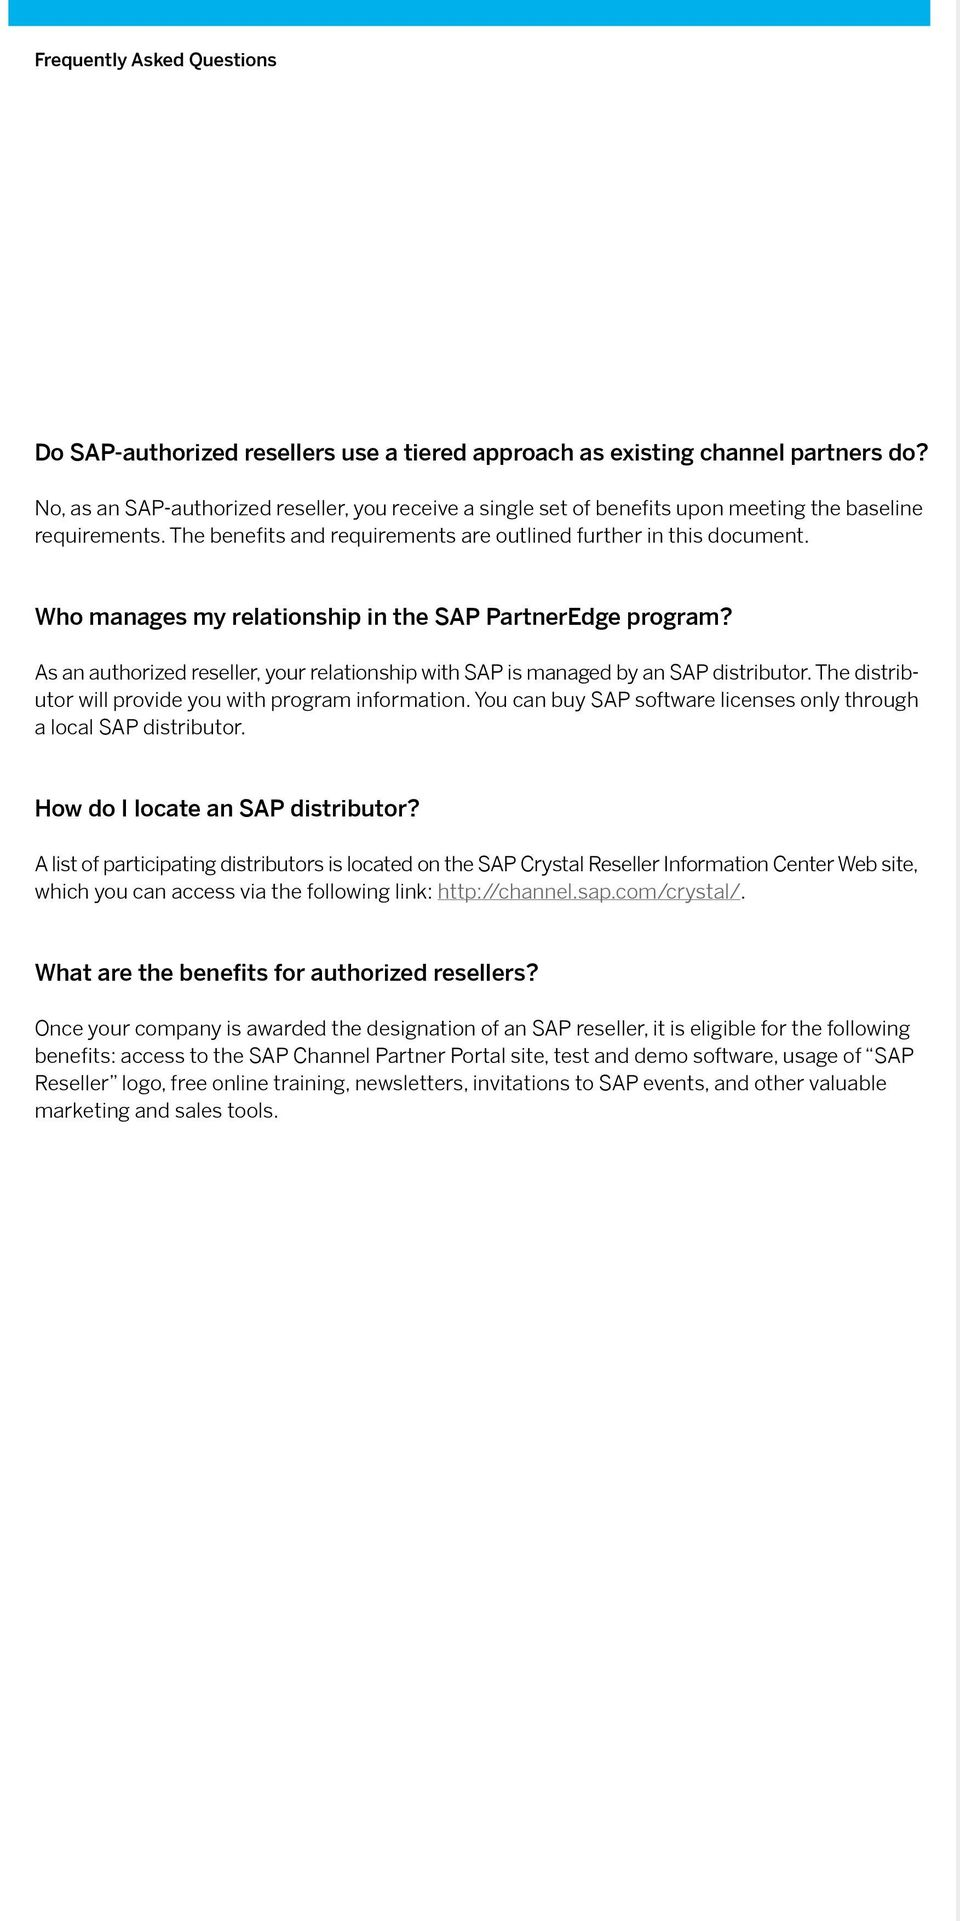 As an authorized reseller, your relationship with SAP is managed by an SAP distributor. The distributor will provide you with program information.